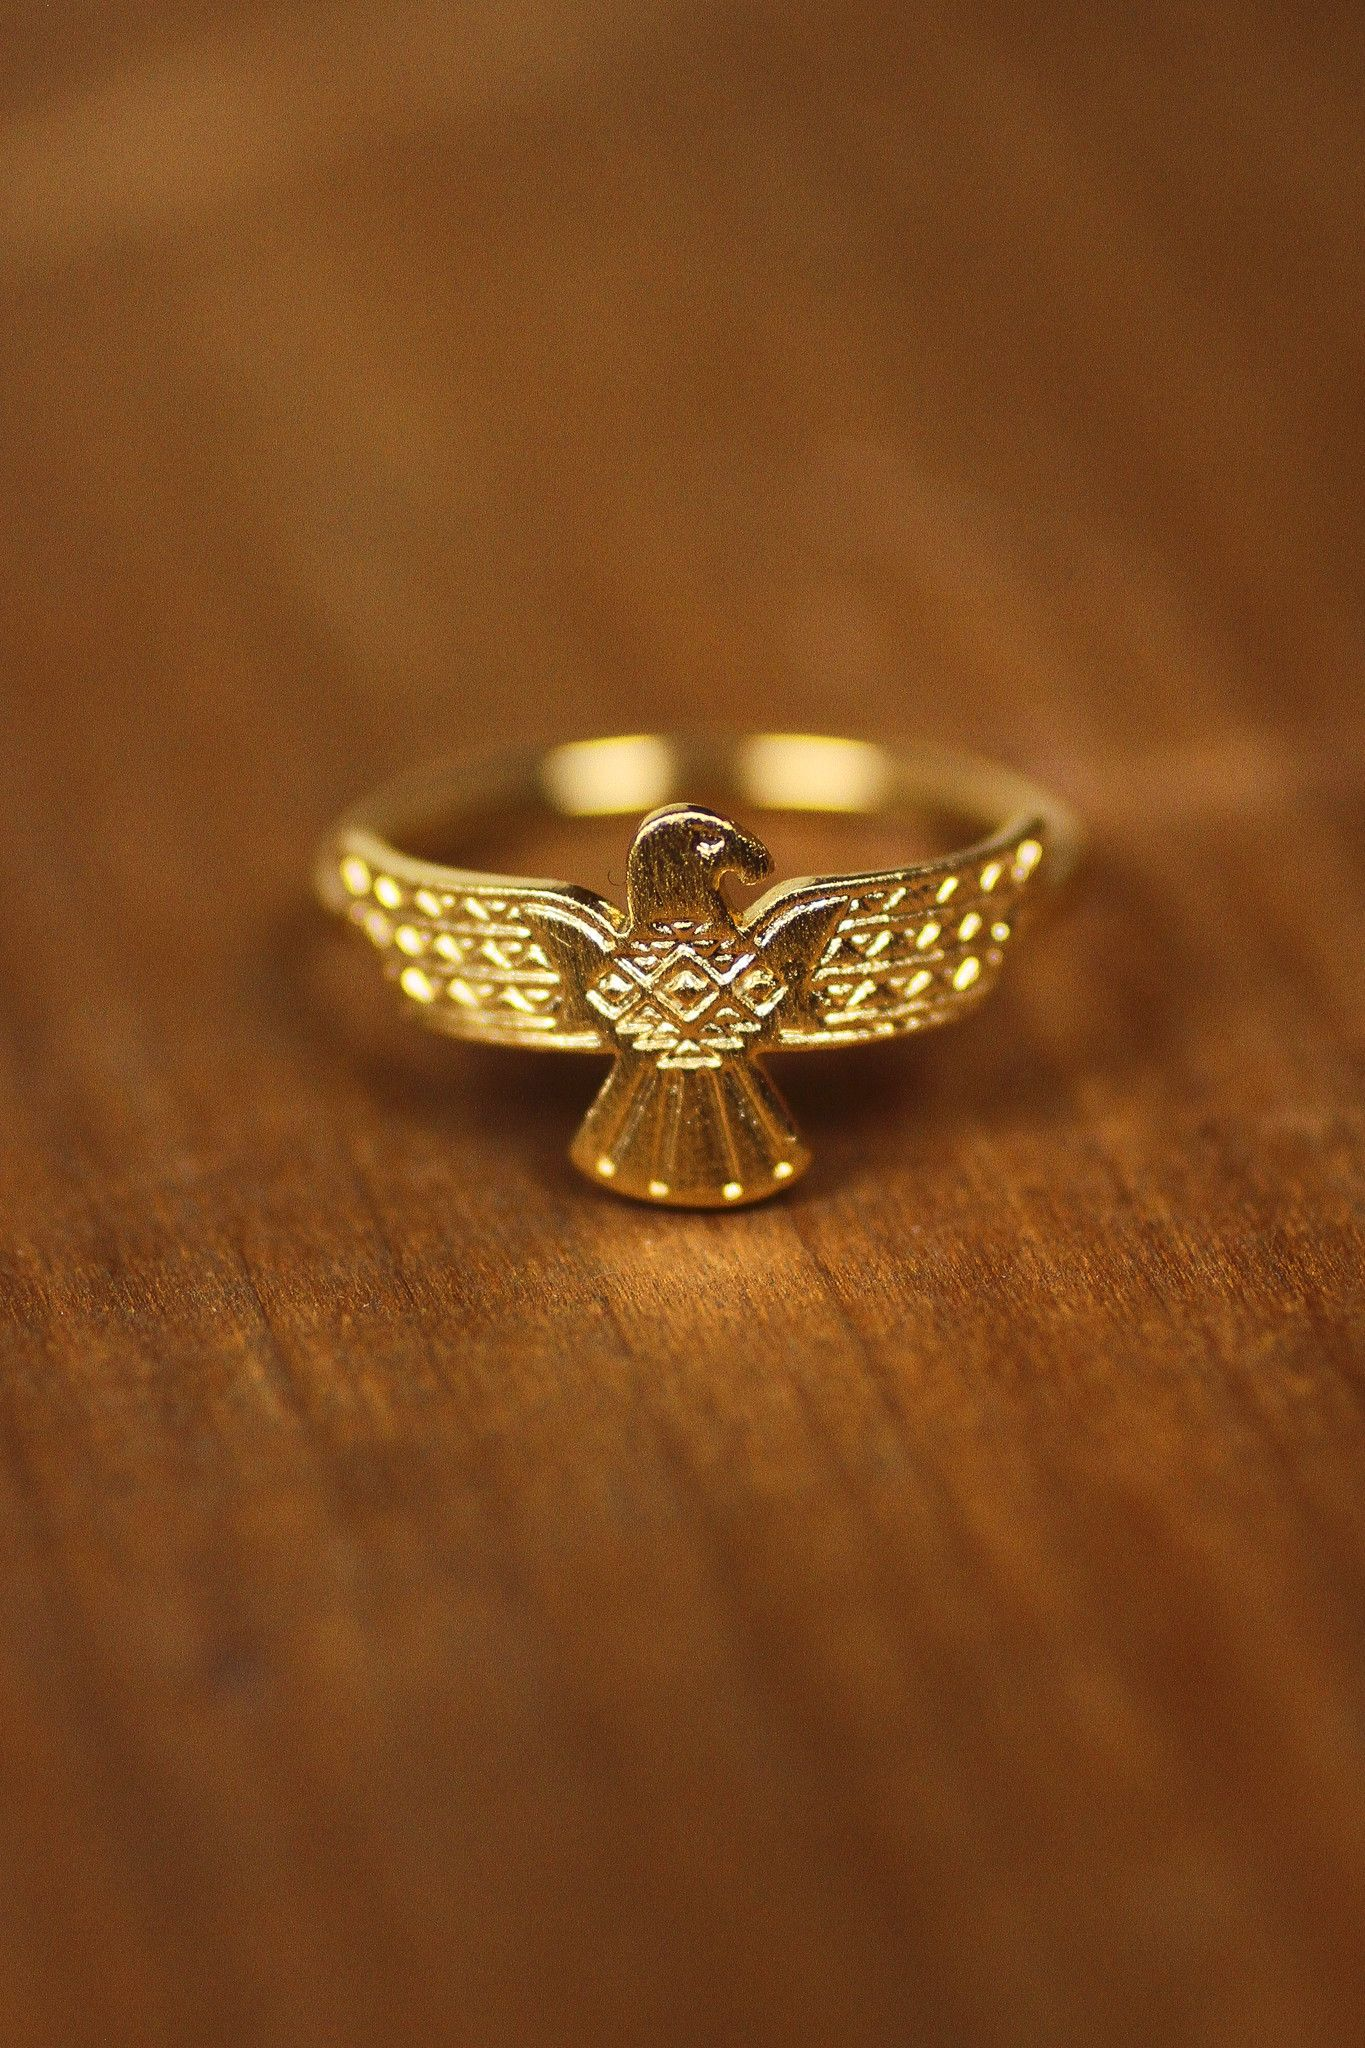 Totem Eagle Etched Ring Jewelry Pinterest